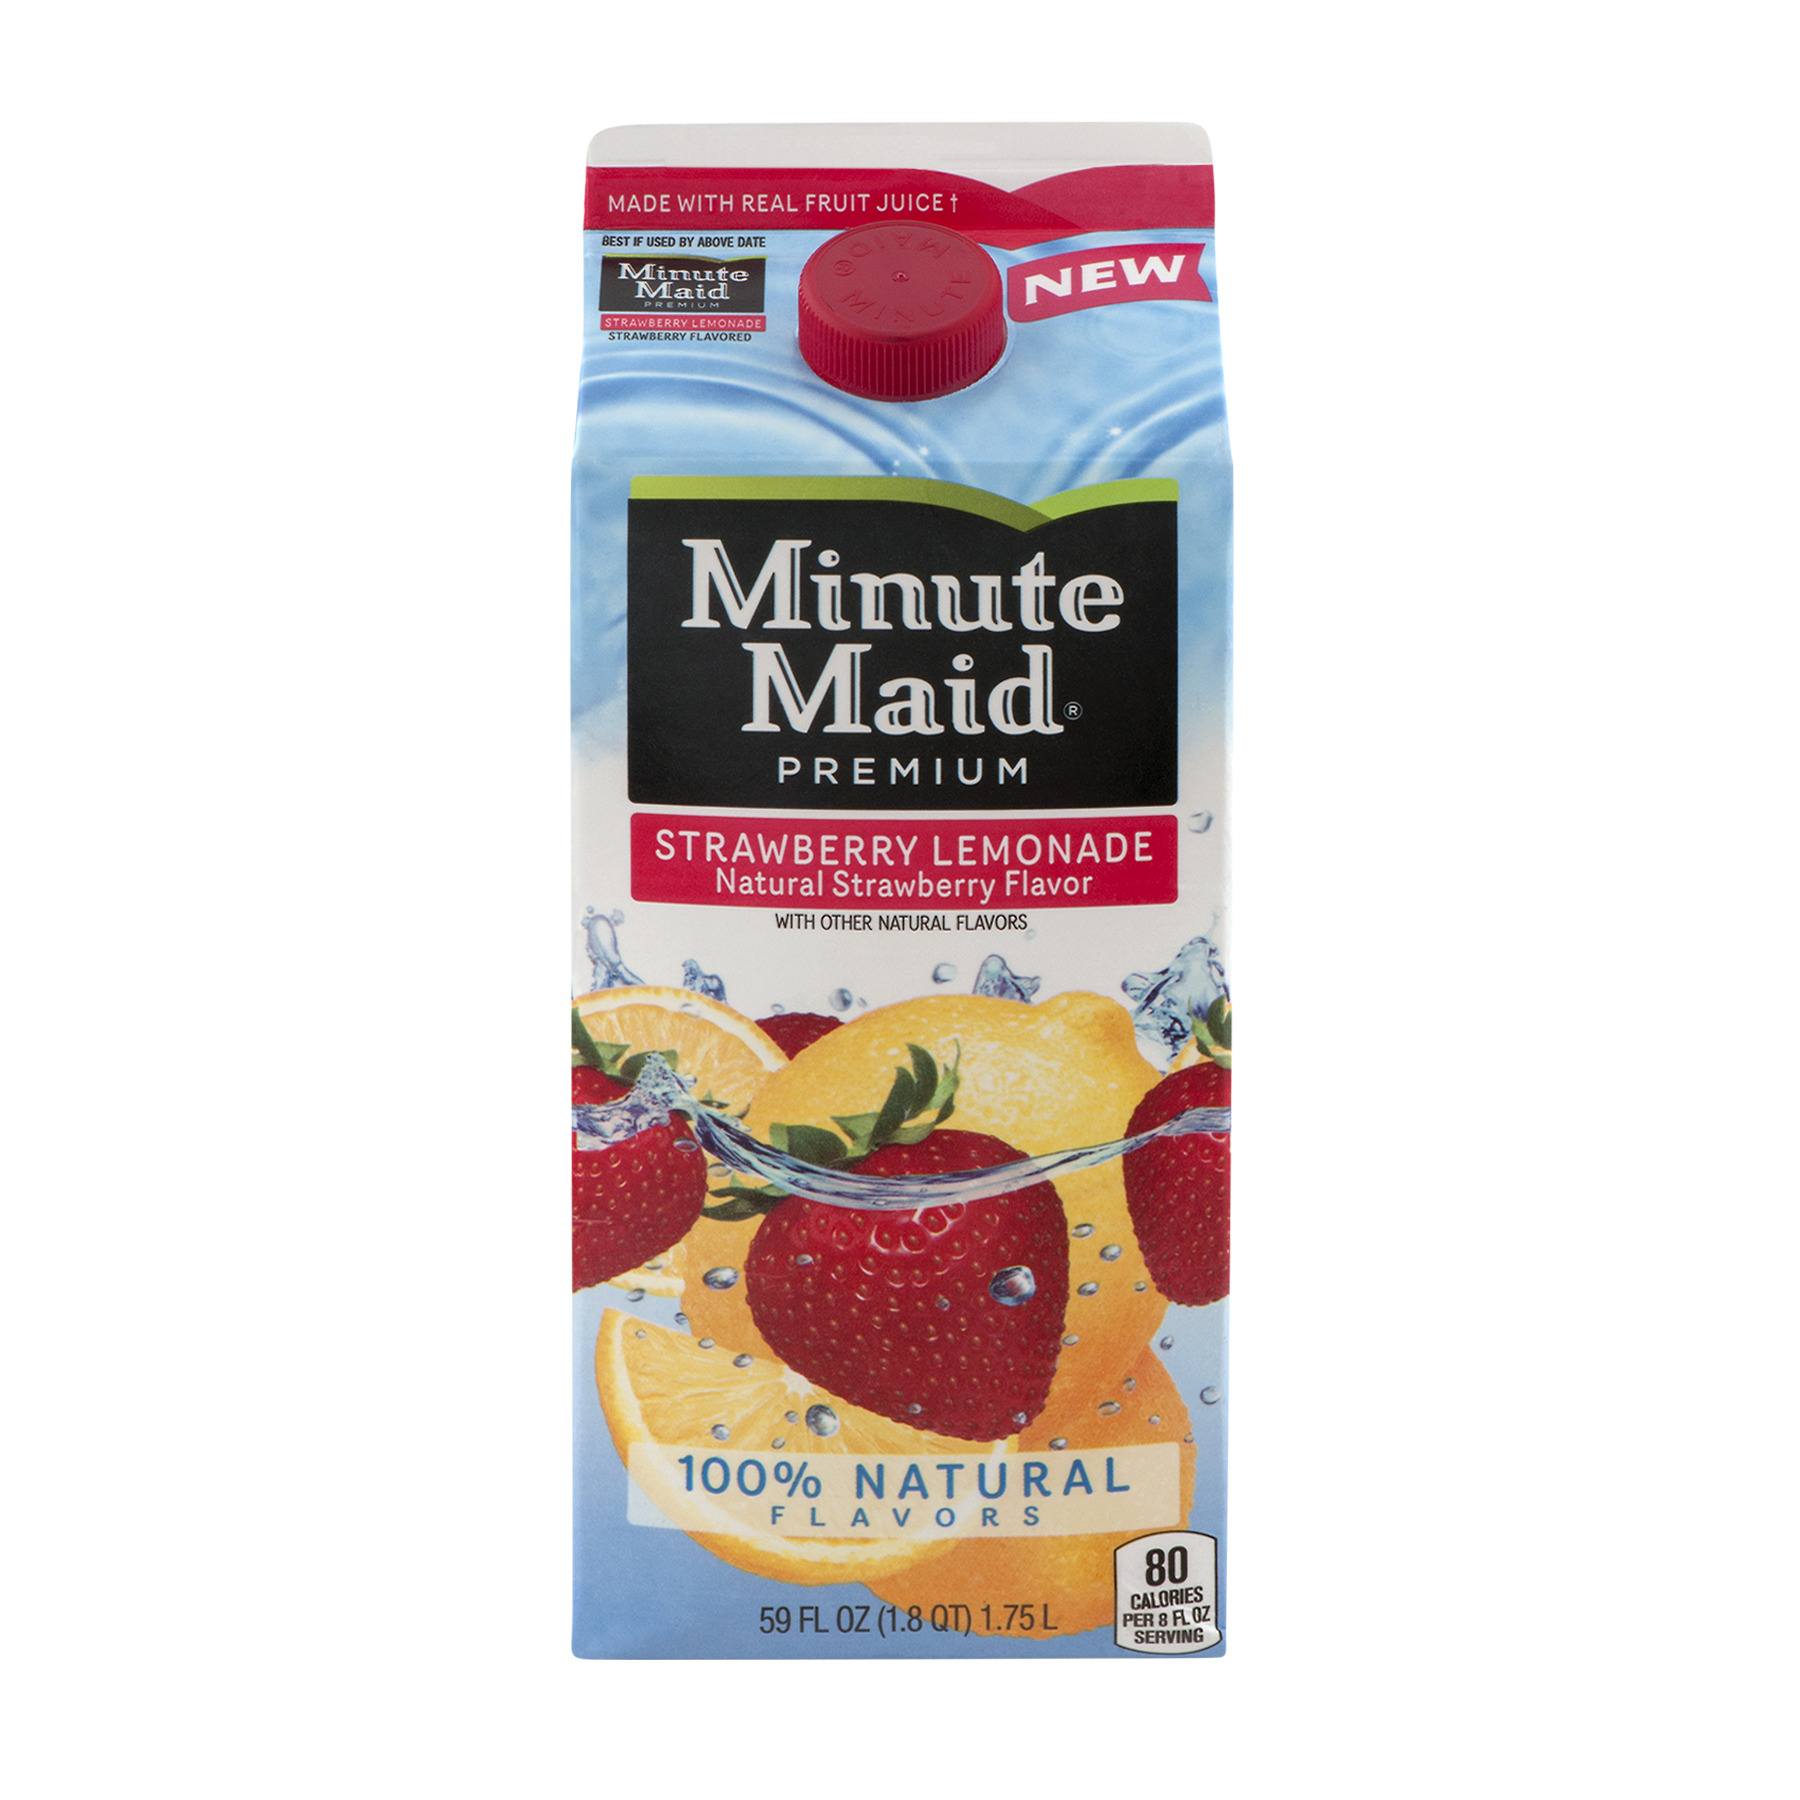 Minute Maid Premium Strawberry Lemonade, 59.0 FL OZ